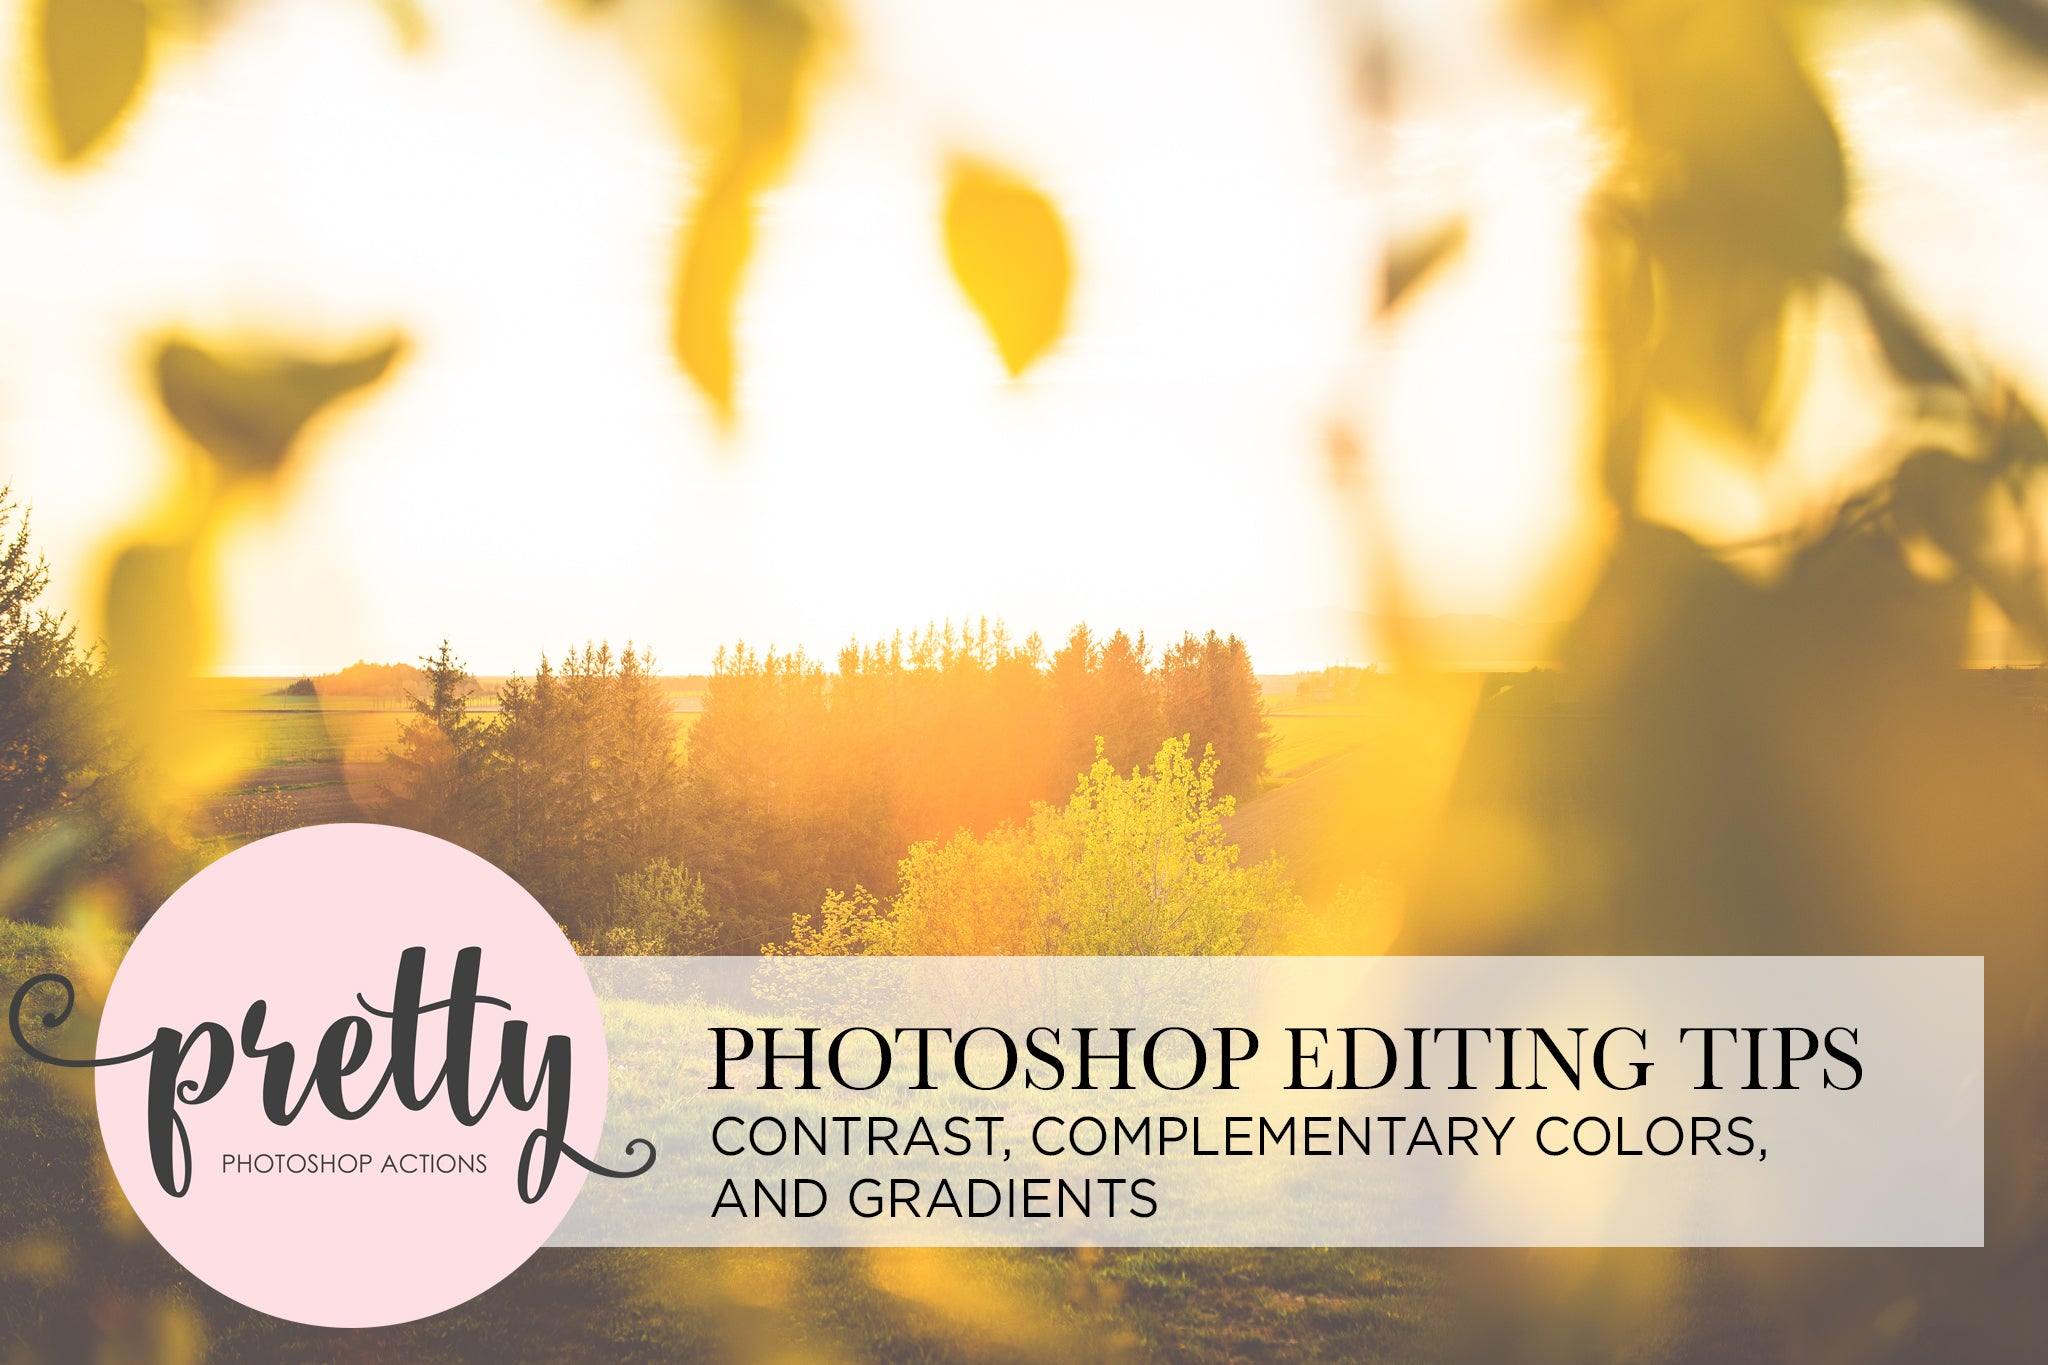 Photoshop Editing Tips